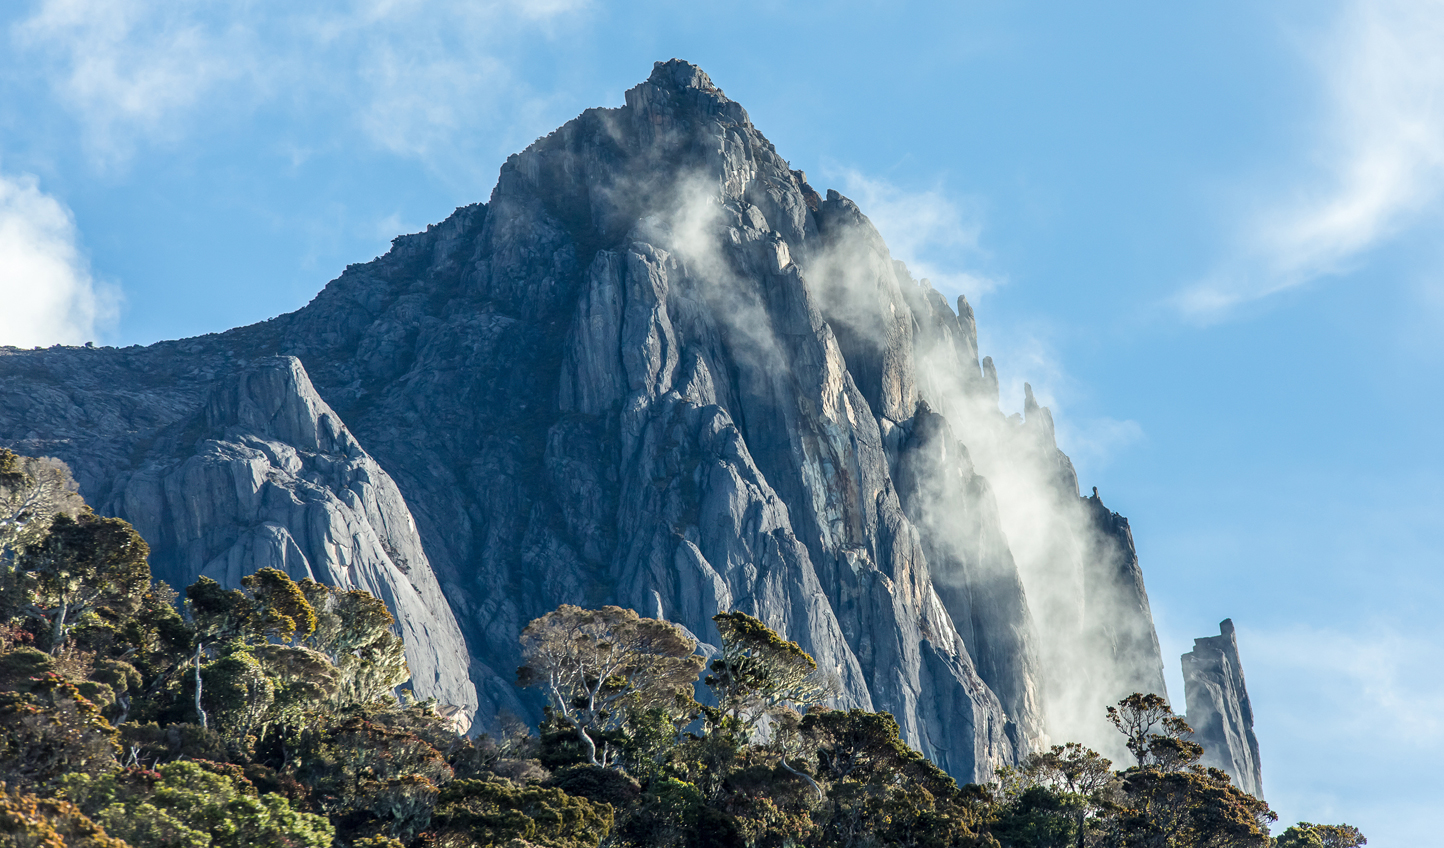 Mount Kinabalu from the forest floor